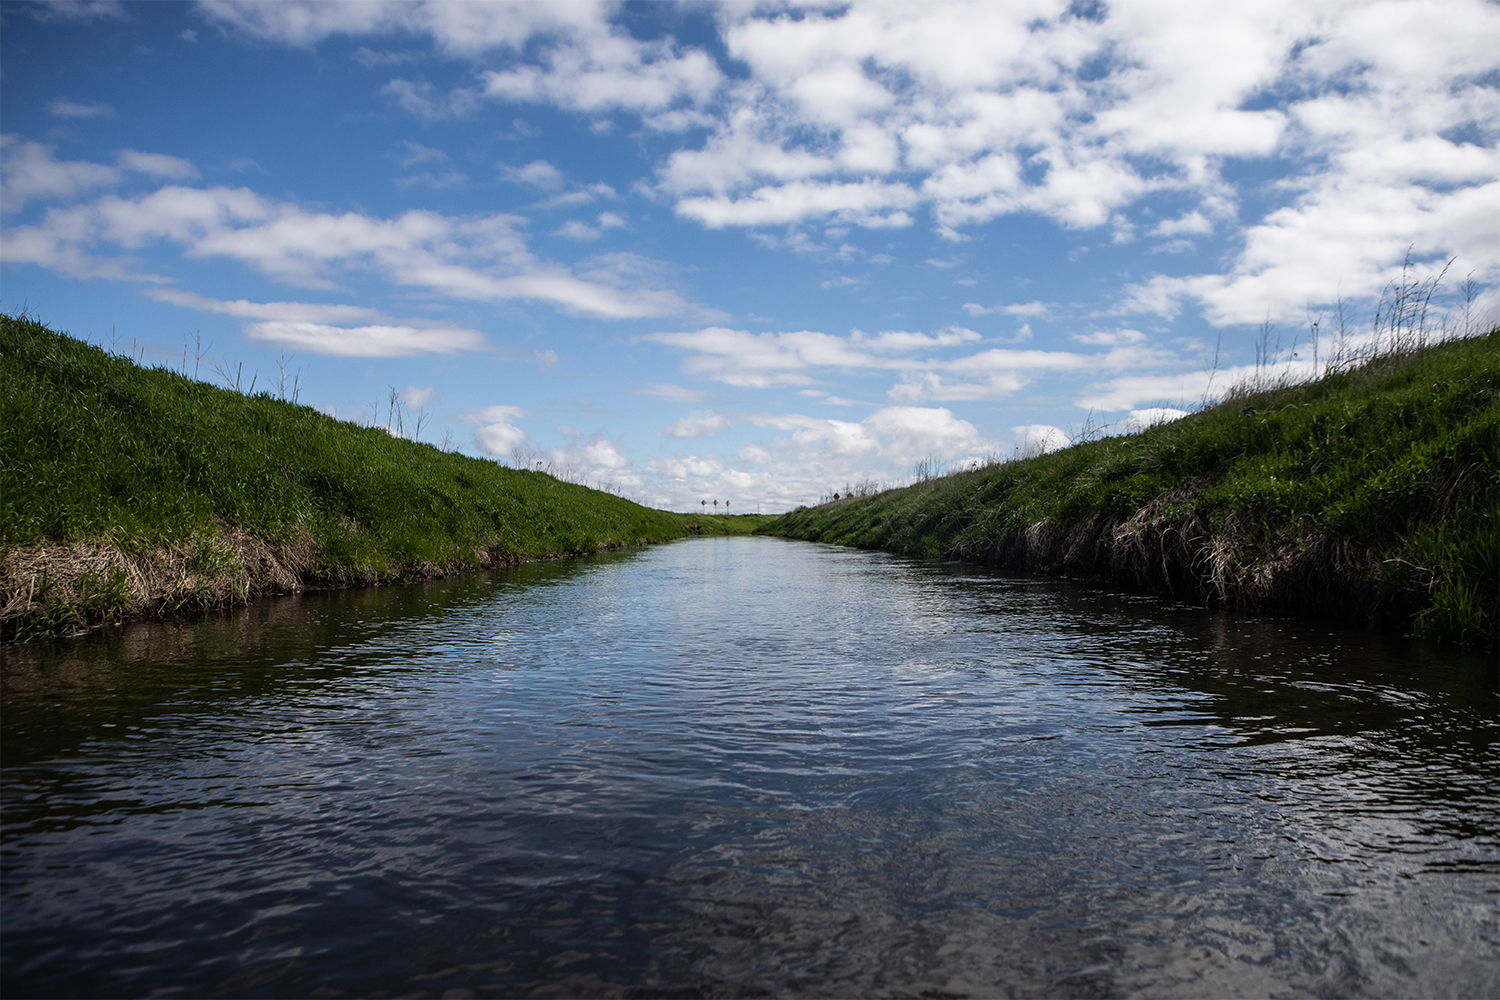 A narrow section of the Iowa River's west branch is seen on May 20, 2019. The expedition, which spanned 27 days covered the entire length of the 329 mile river, sought to provide insight into issues of water quality within the state. Along the way, Daily Iowan Photojournalist Ryan Adams conducted nitrate tests of the water, talked with Iowa citizens from a diverse set of backgrounds to understand how Iowans view the issue.